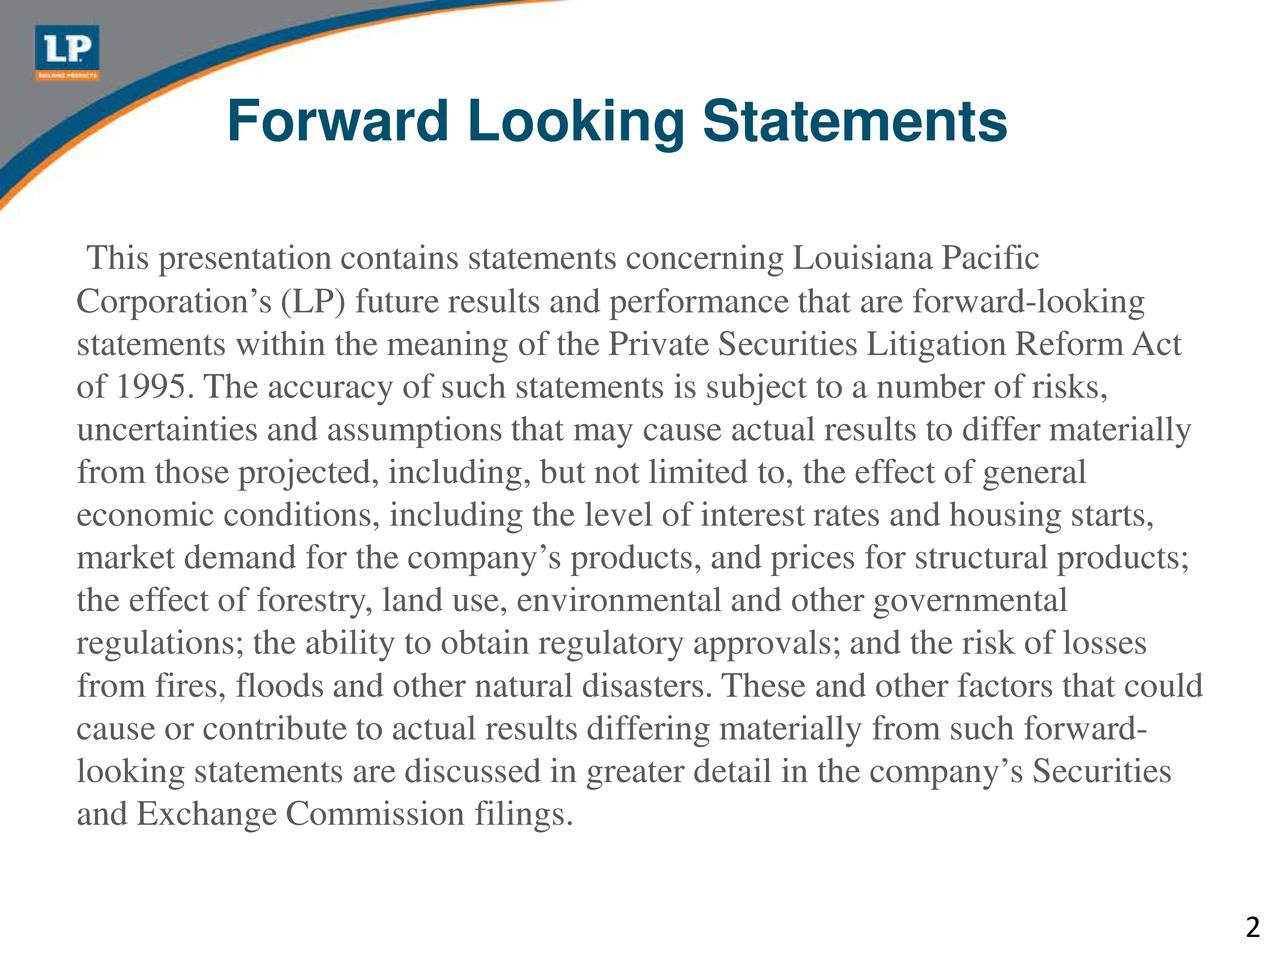 This presentation contains statements concerning Louisiana Pacific Corporations (LP) future results and performance that are forward-looking statements within the meaning of the Private Securities Litigation ReformAct of 1995. The accuracy of such statements is subject to a number of risks, uncertainties and assumptions that may cause actual results to differ materially from those projected, including, but not limited to, the effect of general economic conditions, including the level of interest rates and housing starts, market demand for the companys products, and prices for structural products; the effect of forestry, land use, environmental and other governmental regulations; the ability to obtain regulatory approvals; and the risk of losses from fires, floods and other natural disasters. These and other factors that could cause or contribute to actual results differing materially from such forward- looking statements are discussed in greater detail in the companys Securities and Exchange Commission filings. 2